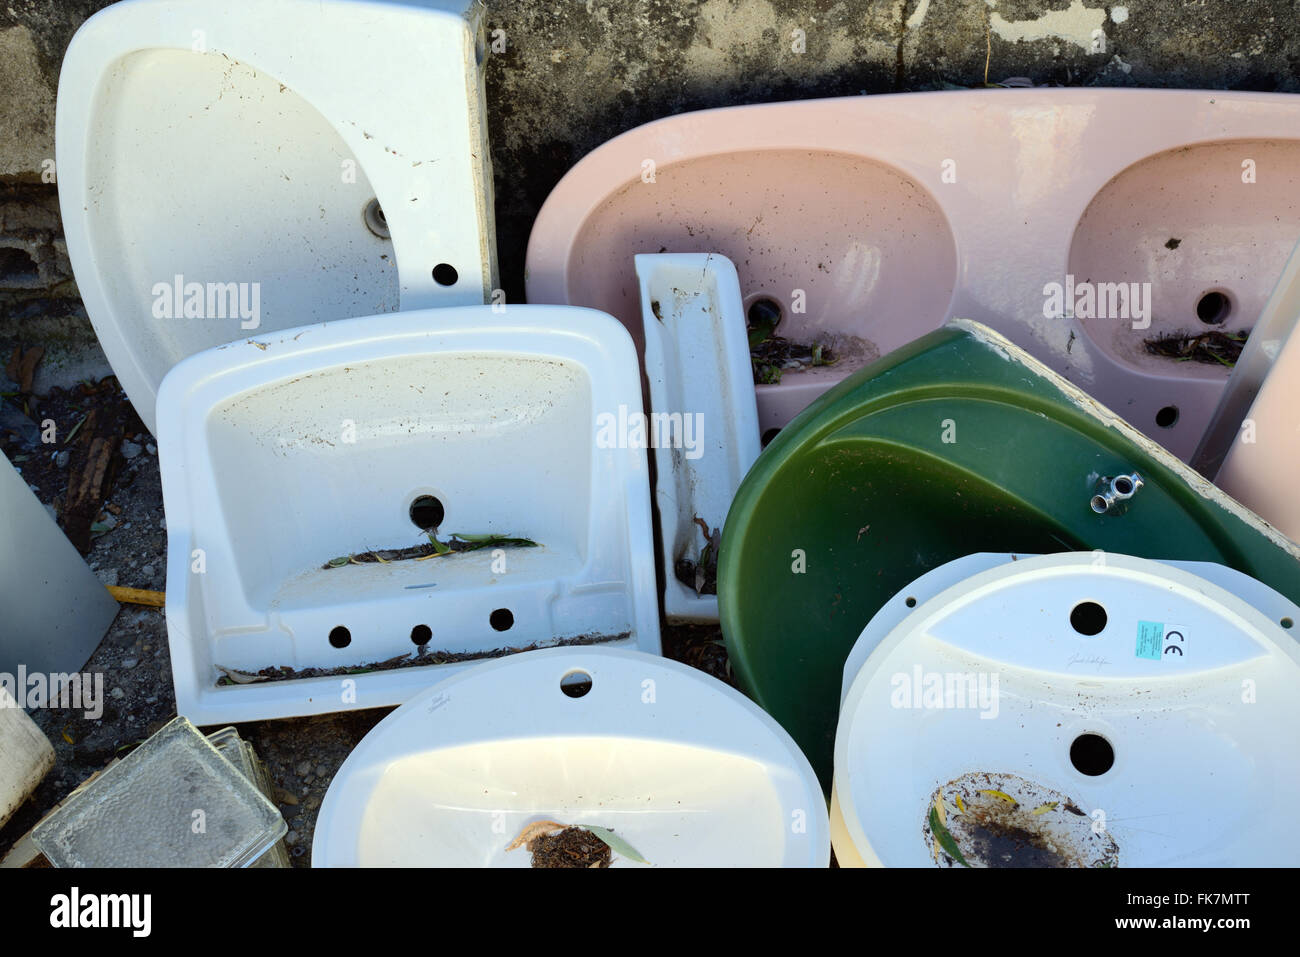 Recycled Secondhand or Second-Hand Old Bathroom Fittings and Sinks - Stock Image